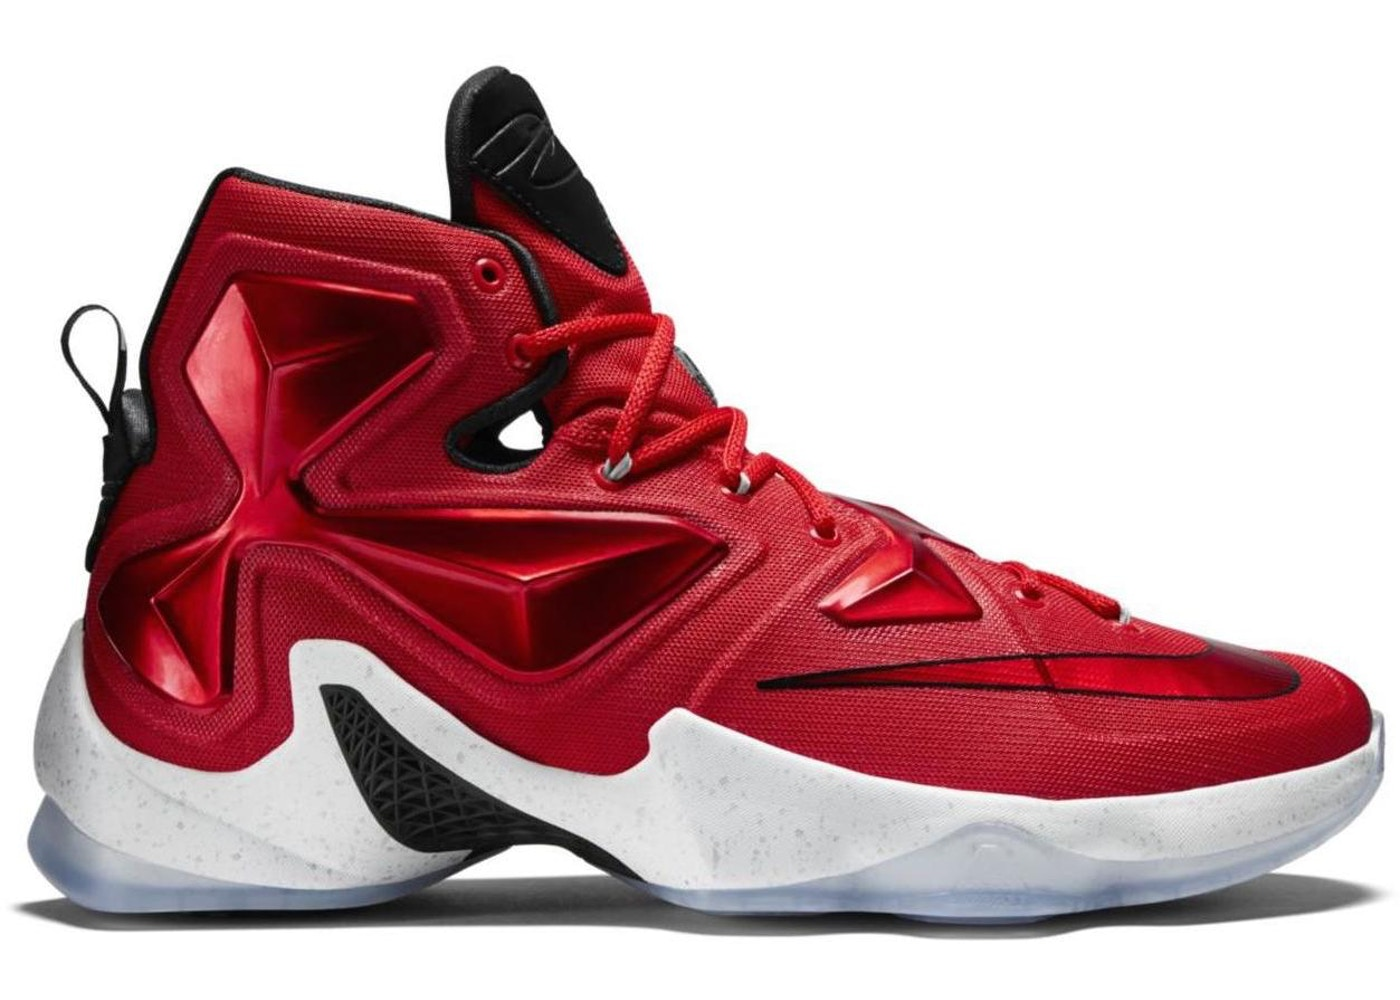 1a37e59bf9d8 Buy Nike LeBron 13 Shoes   Deadstock Sneakers